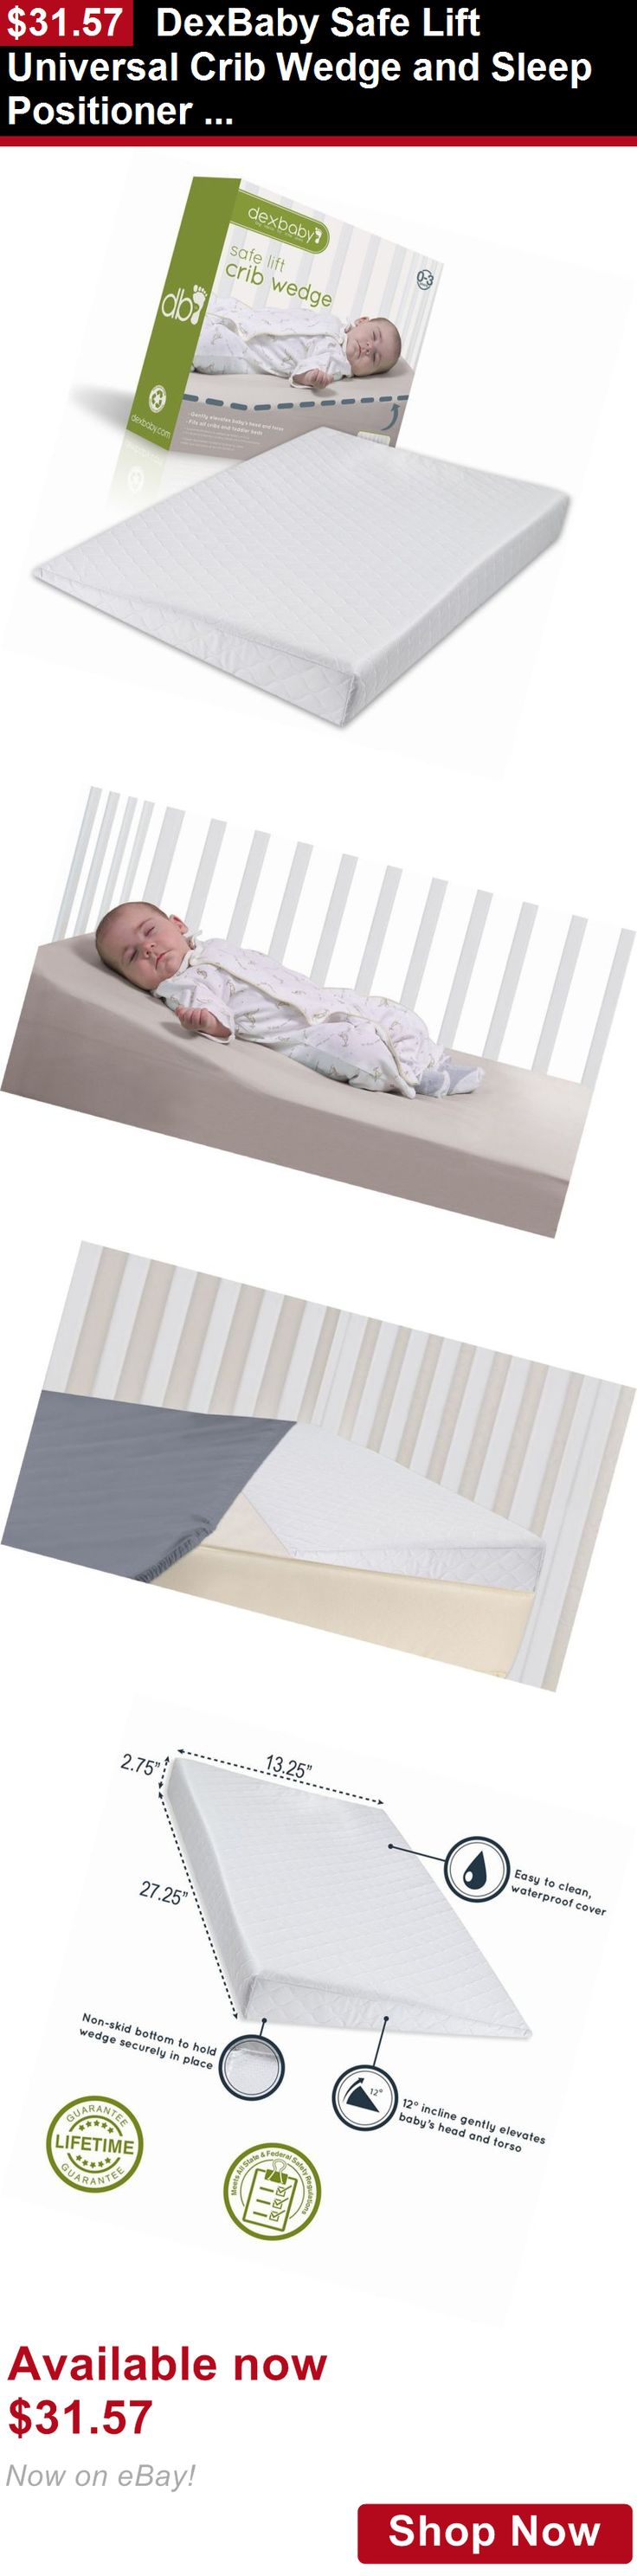 Crib Wedge And Sleep Positioner For Baby Mattress BUY IT NOW ONLY